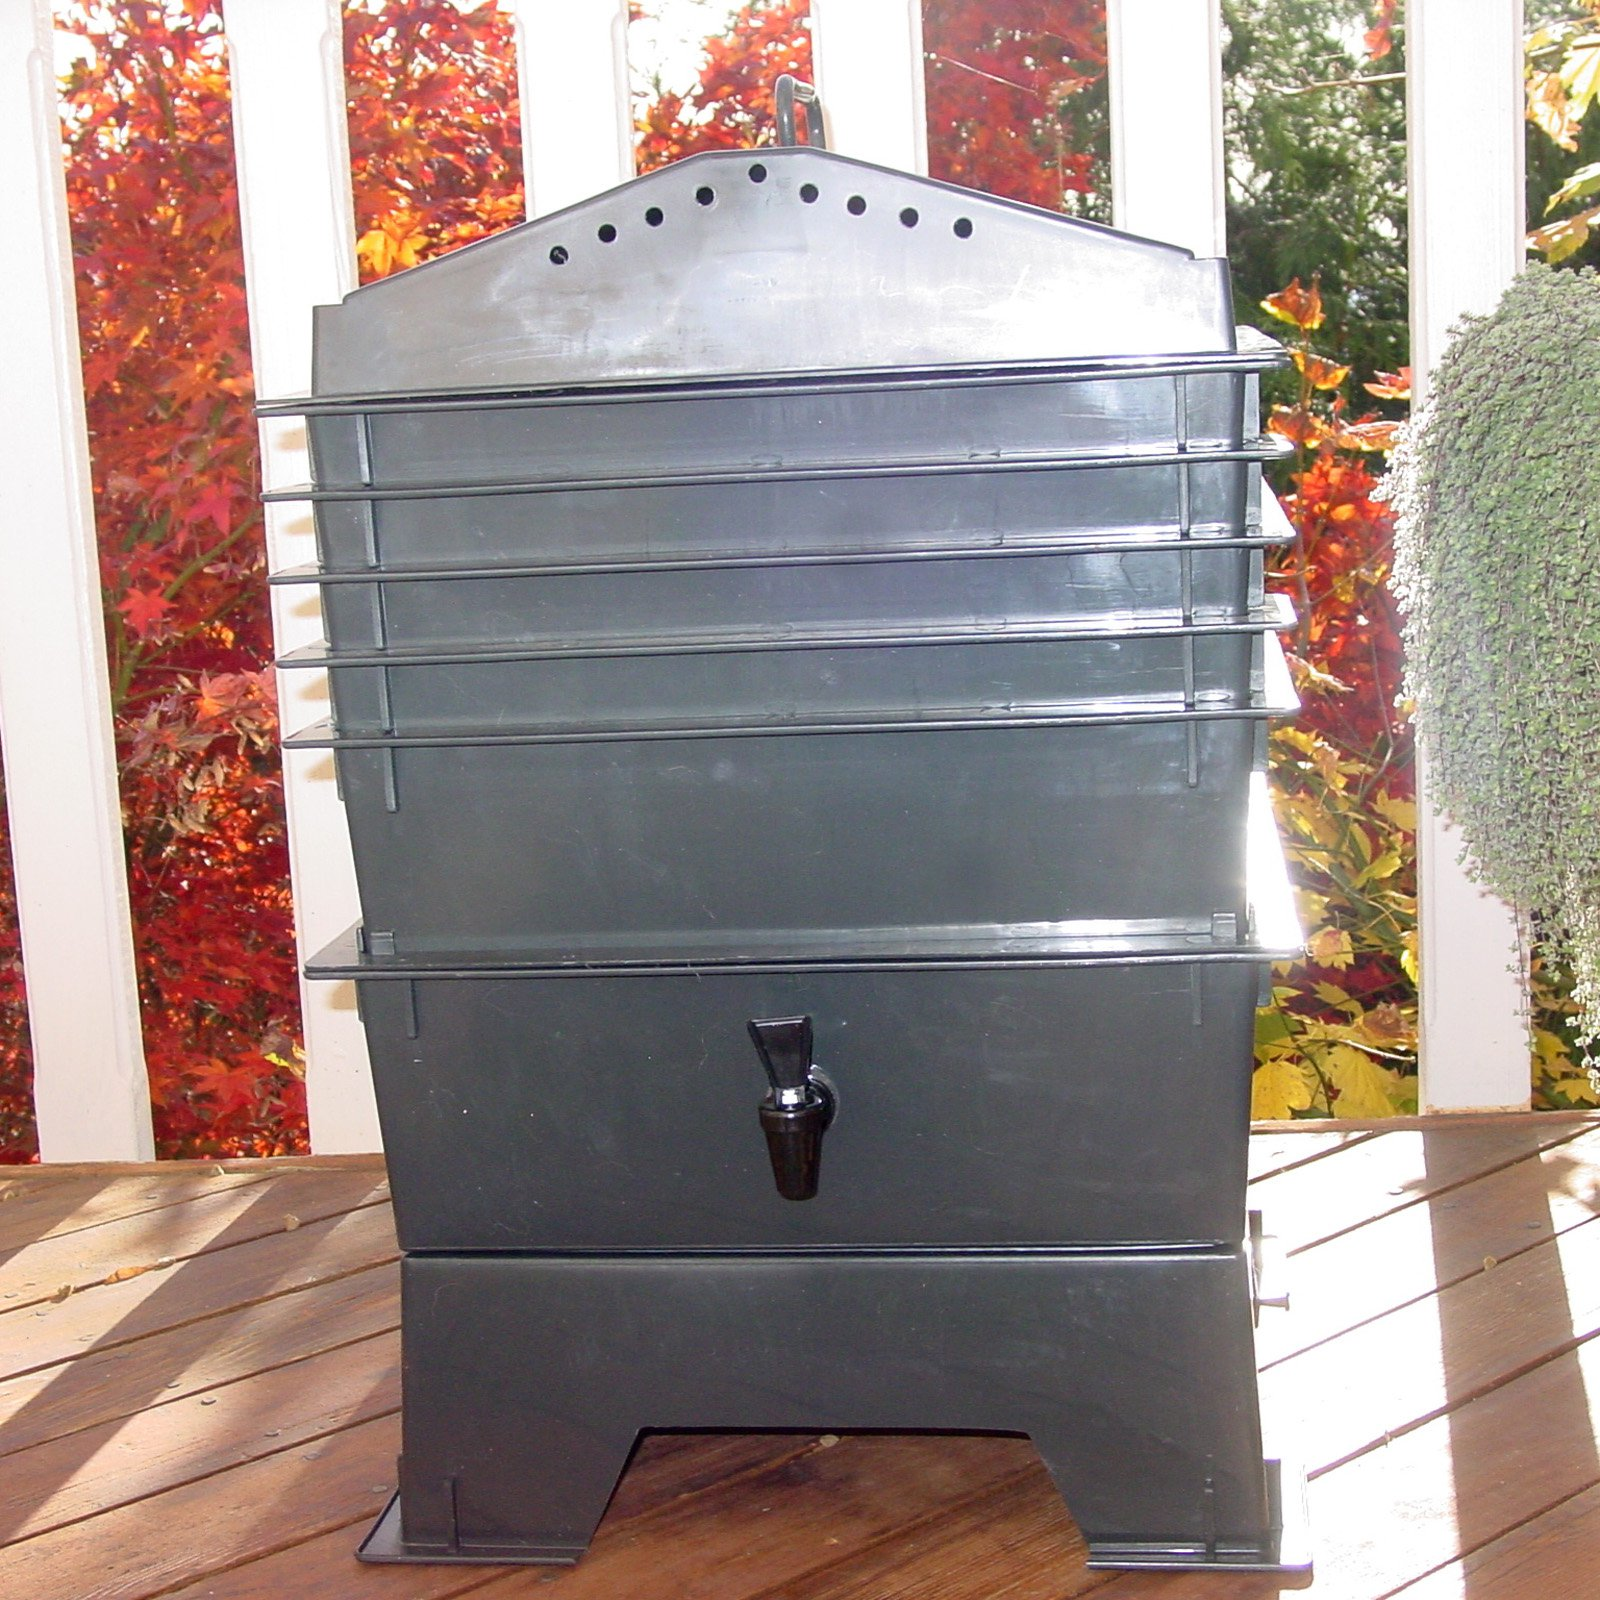 VermiHut 5-Tray Recycled Plastic Worm Composter - Black